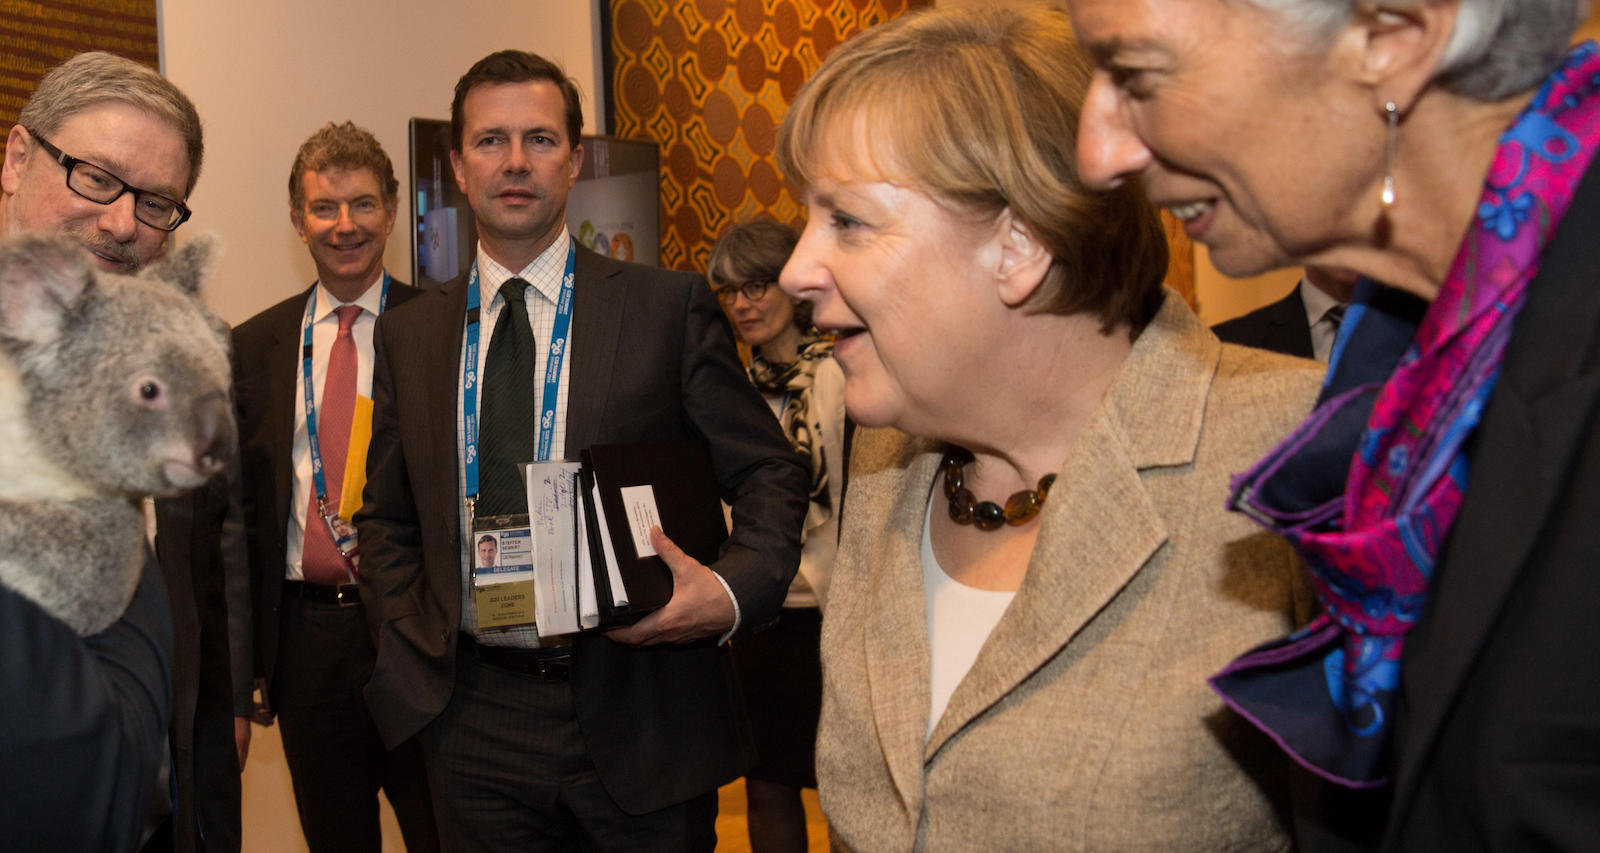 Germany's Chancellor Angela Merkel and IMF President Christine Lagarde meet a local at the G20 (Photo: Andrew Taylor/Getty Images)